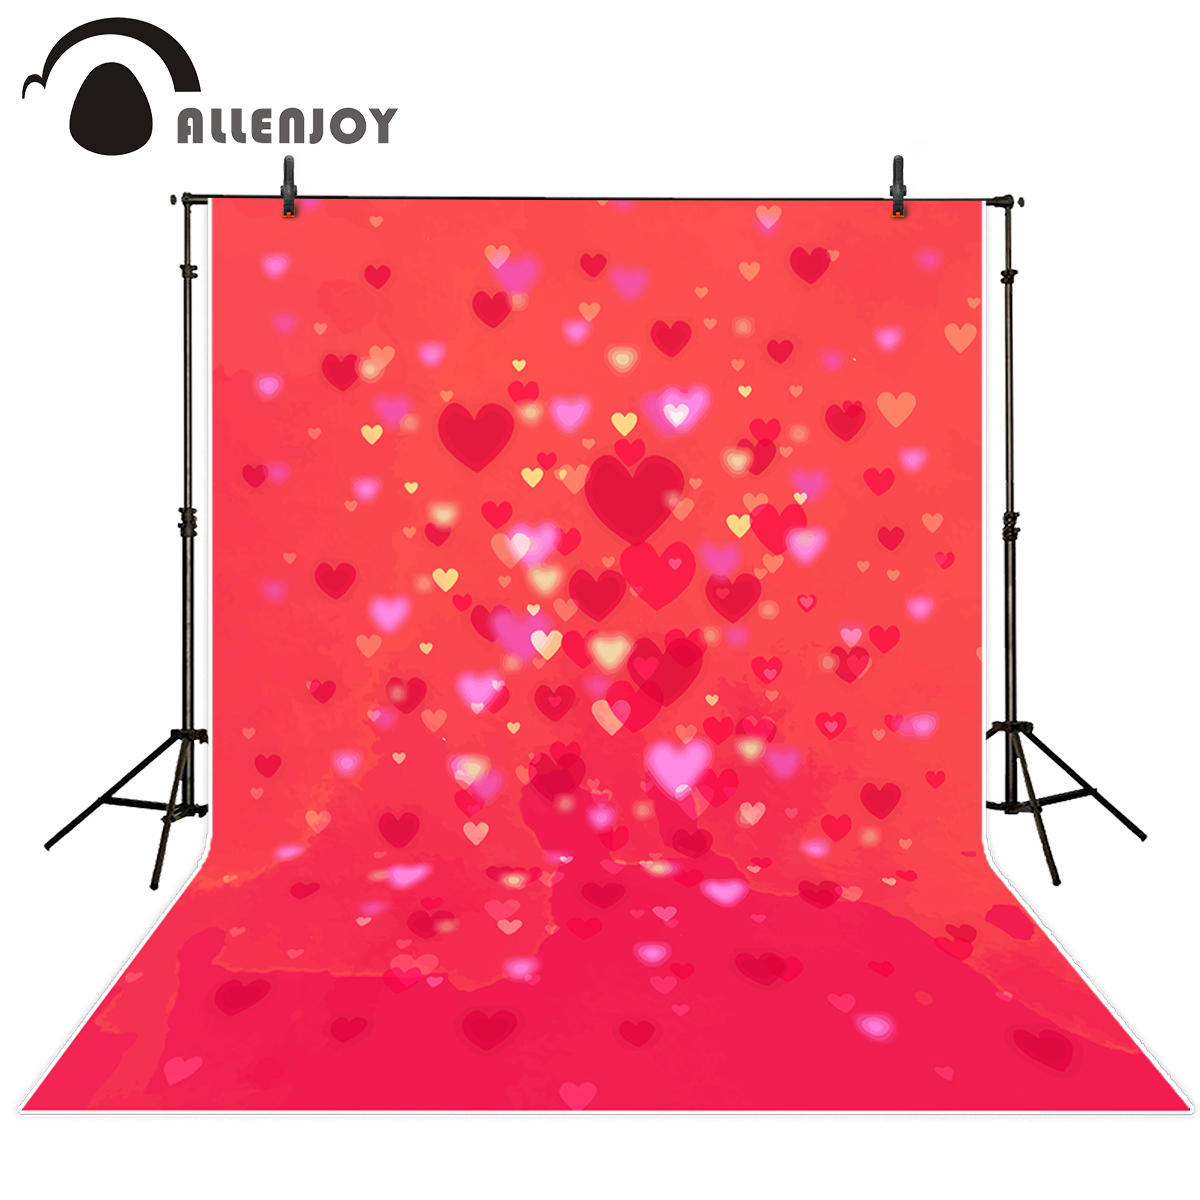 Allenjoy photography backdrops Valentine's Day love hearts pink bokeh shiny wedding photo background vinyl for photo studio allenjoy photography backdrops valentine s day love colourful heart wedding background for studio photo backdrop vinyl